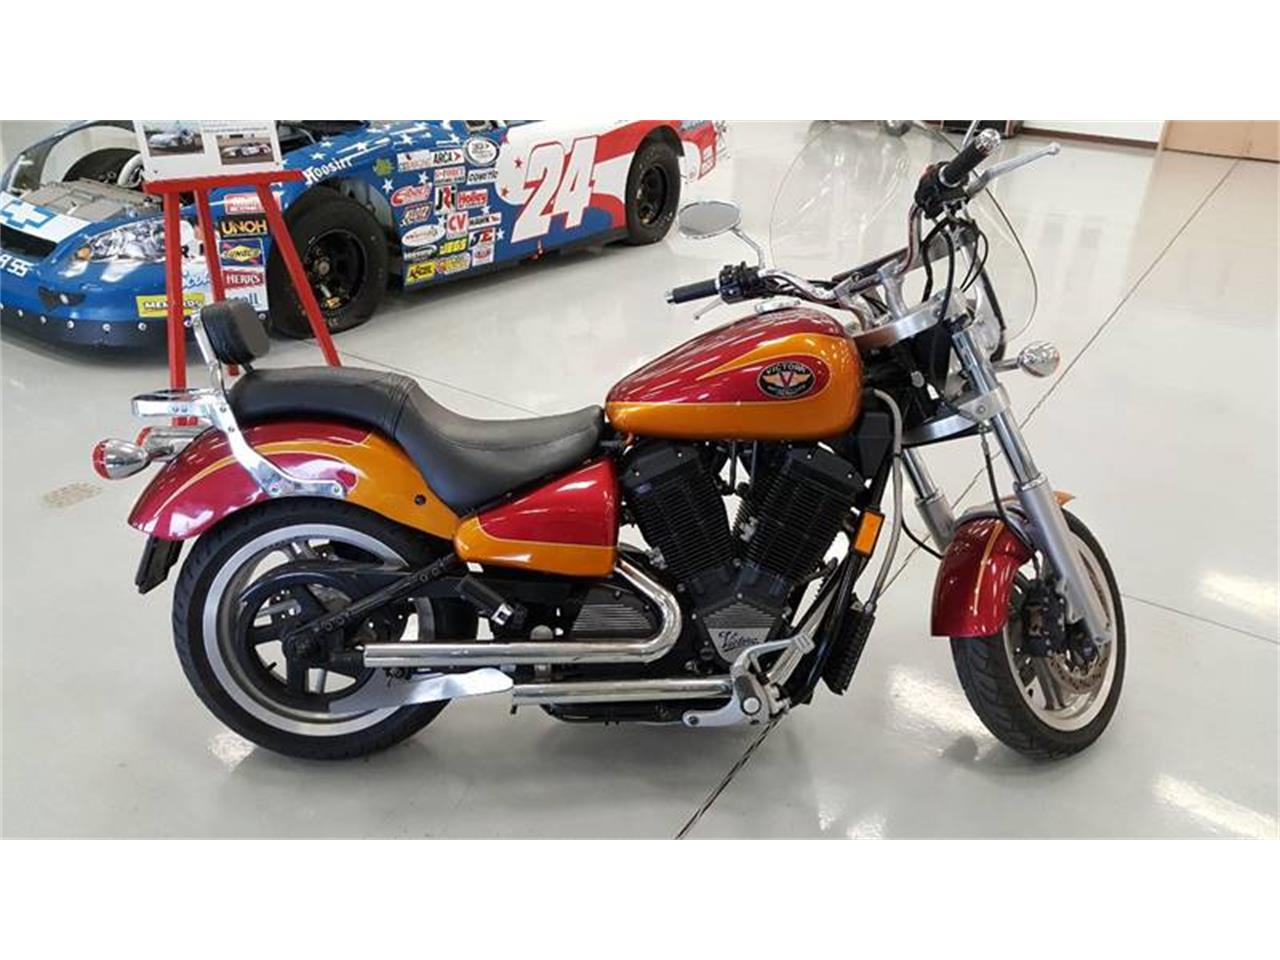 Large Picture of 2000 Motorcycle located in Illinois Offered by Heartland Classics - LO11